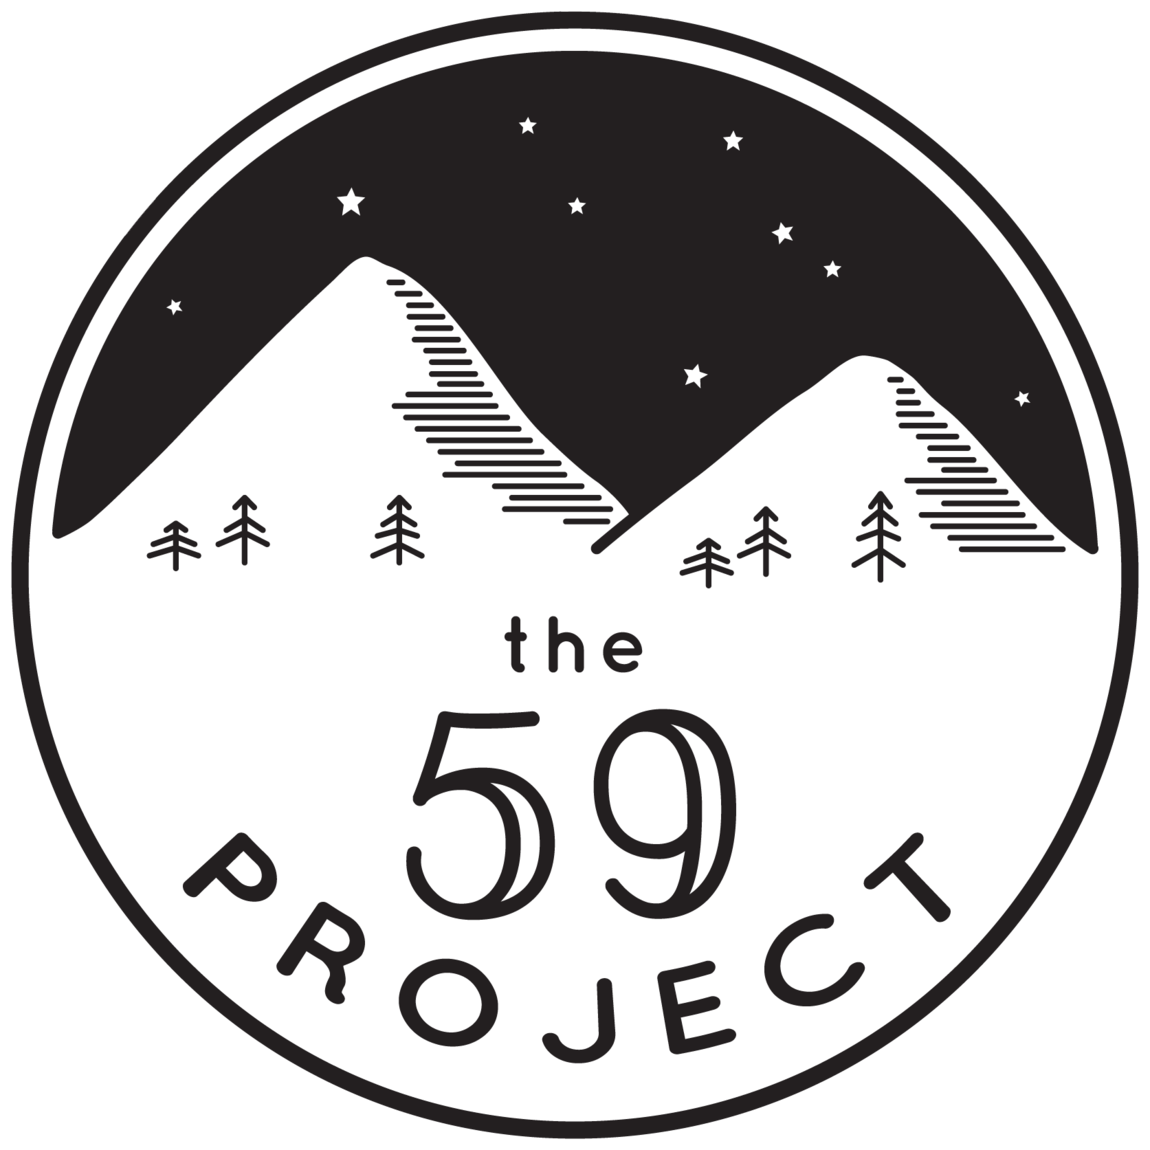 Mrs. Ciccoricco - Logo Design for the 59 Park Project